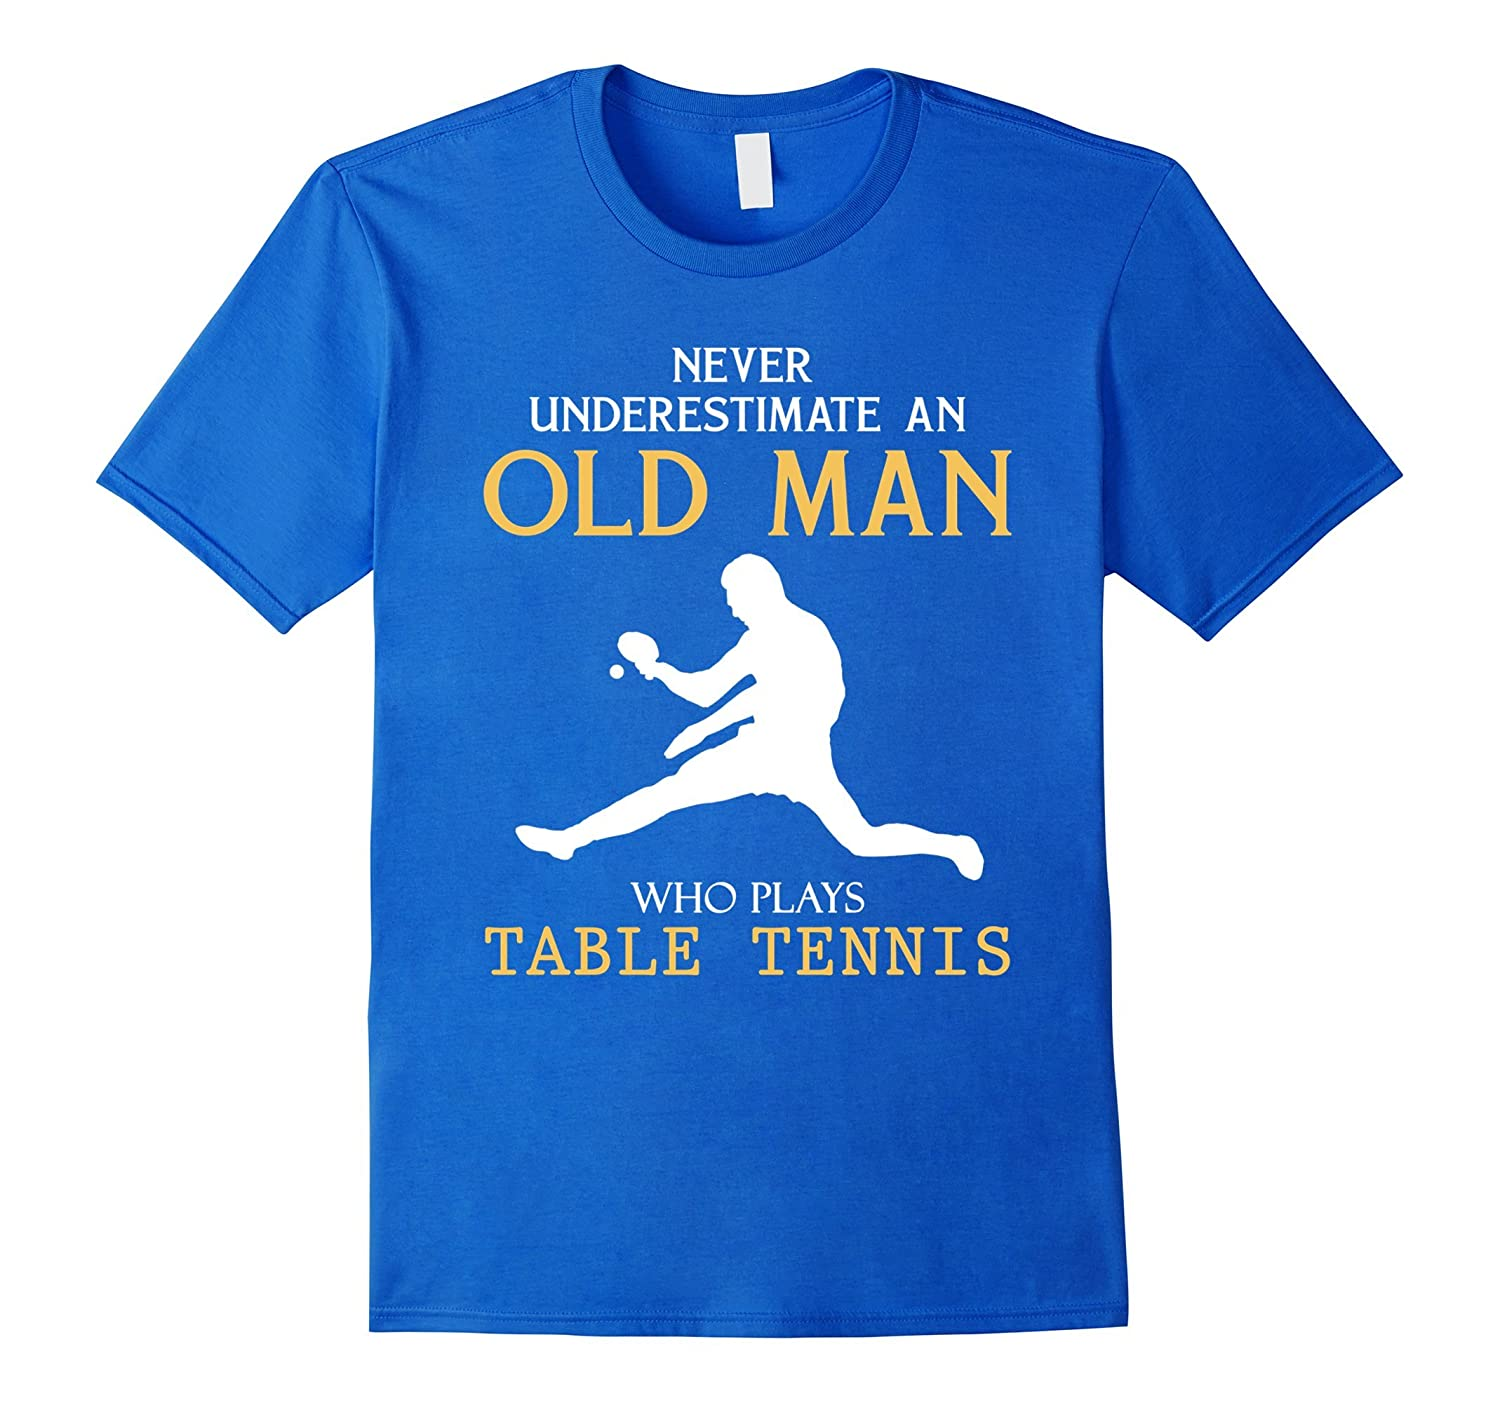 Never Underestimate an Old Man who plays table tennis tees-BN